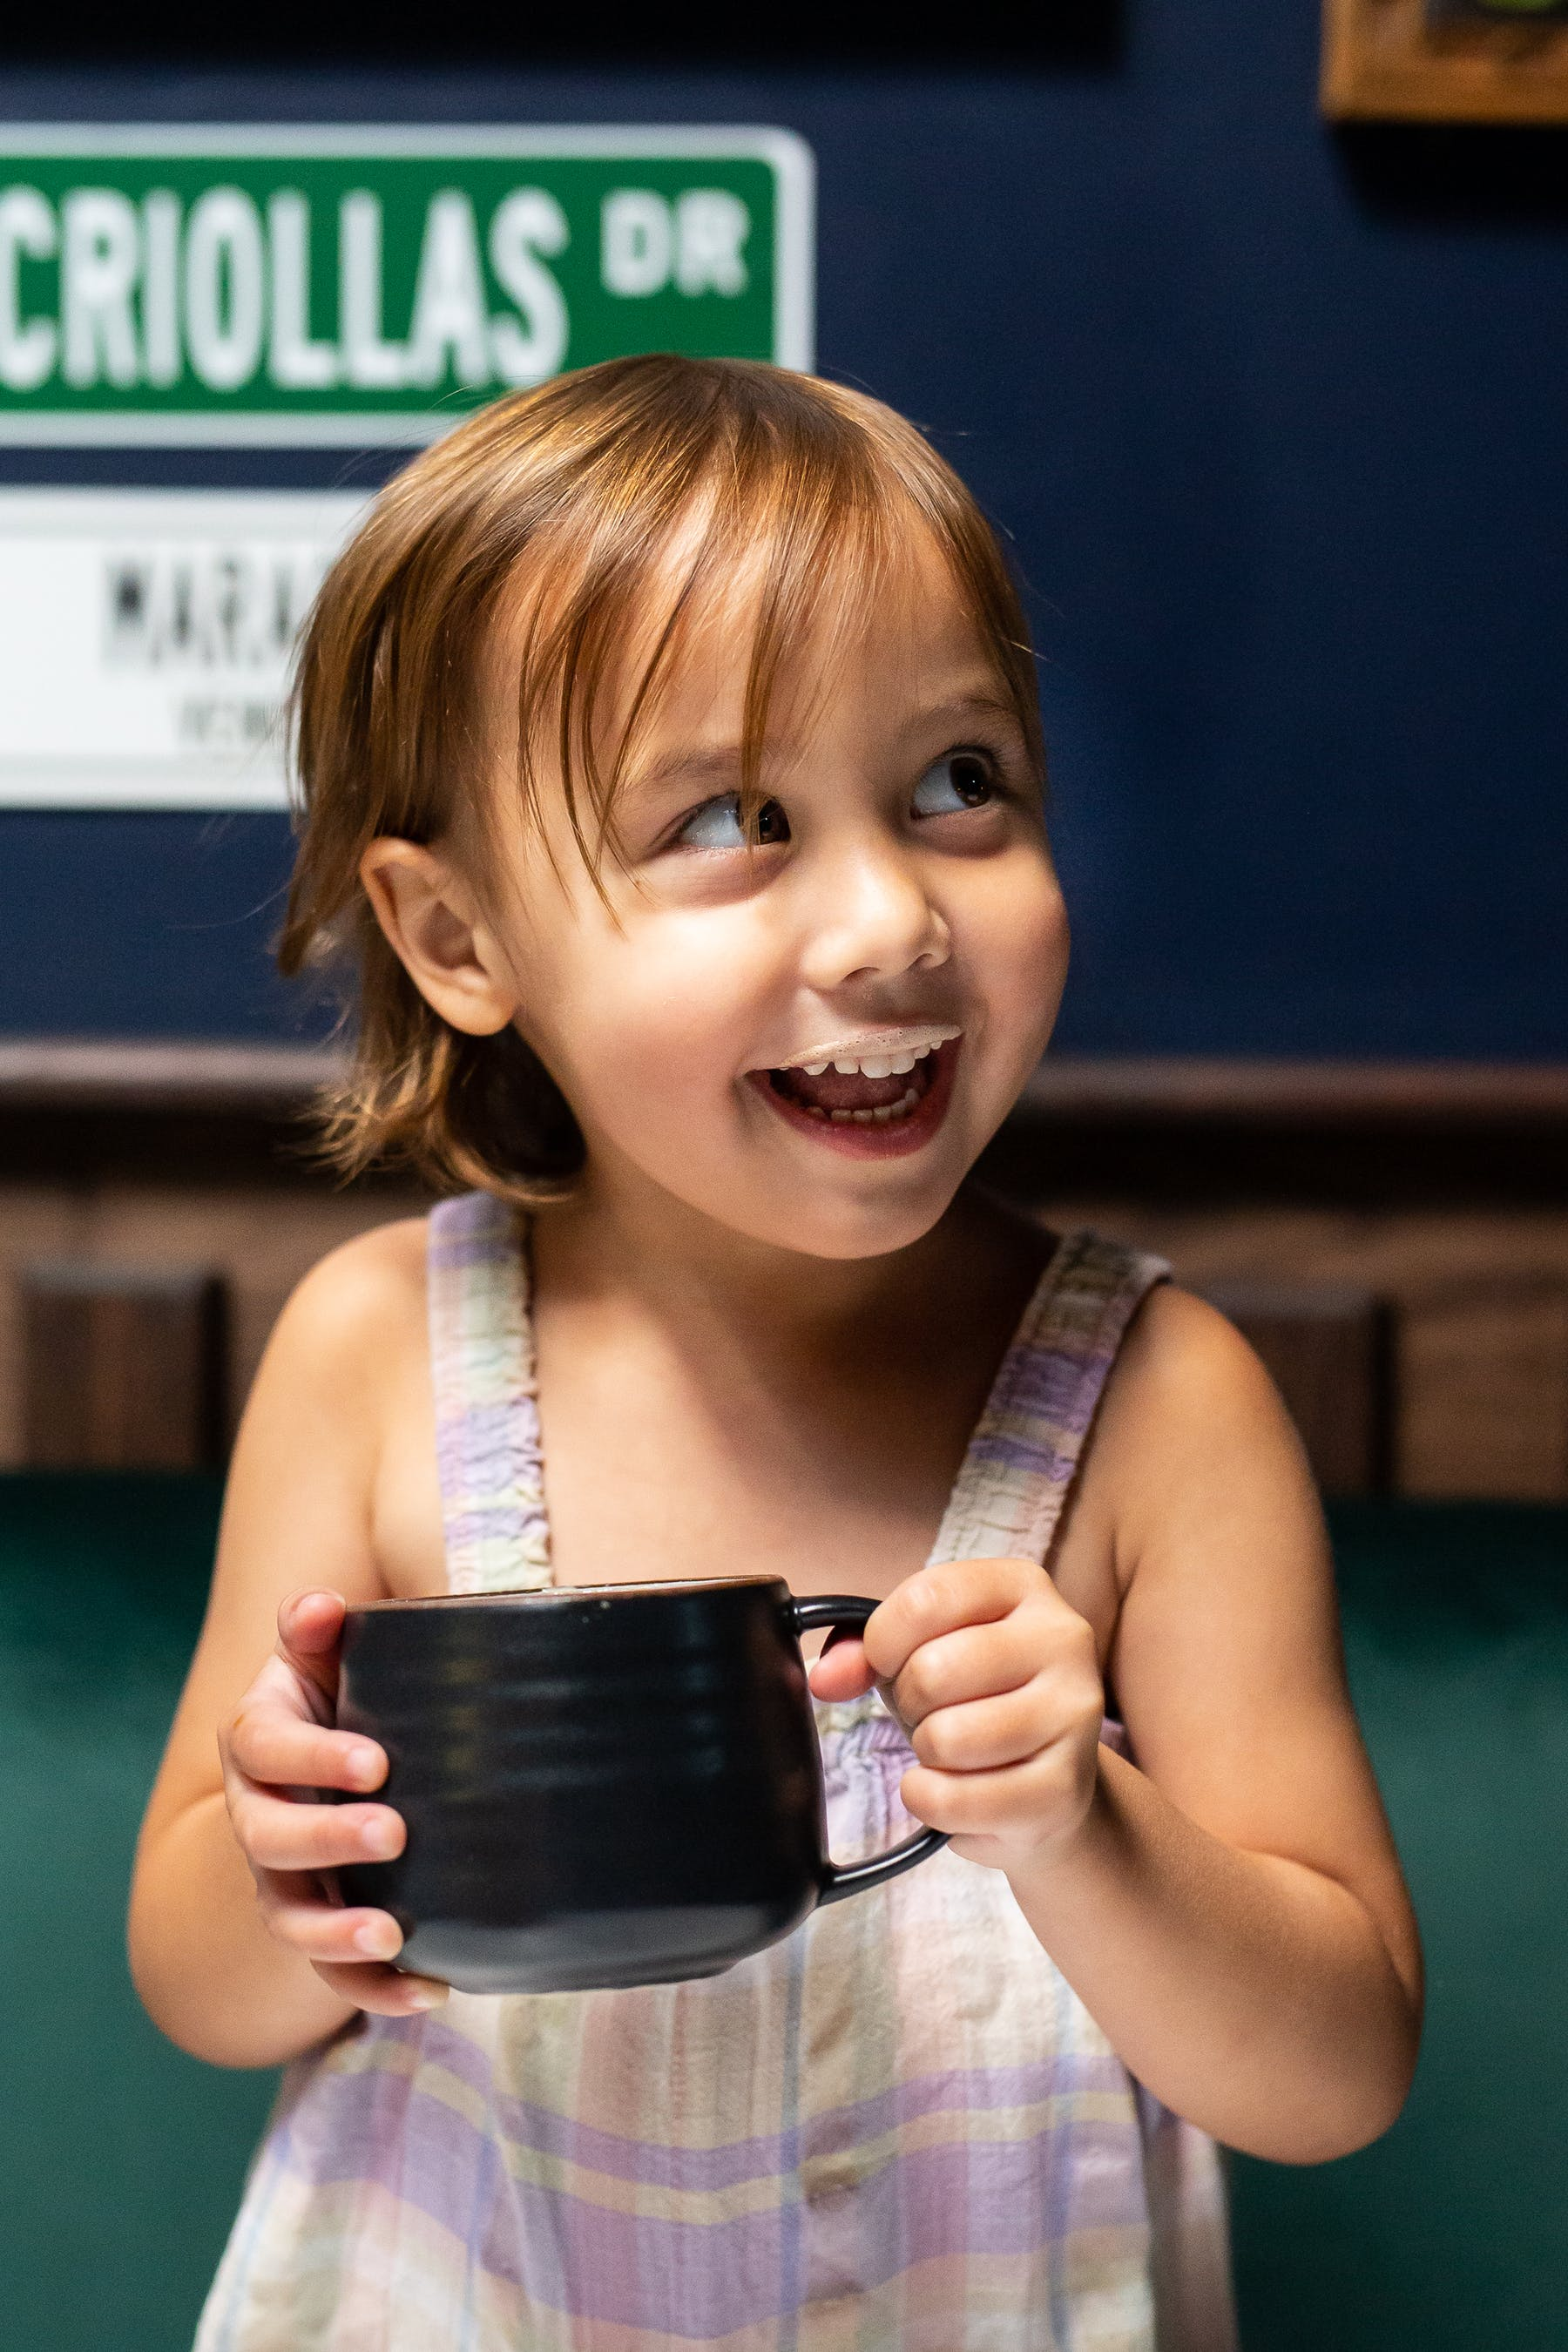 a little girl holding a cell phone